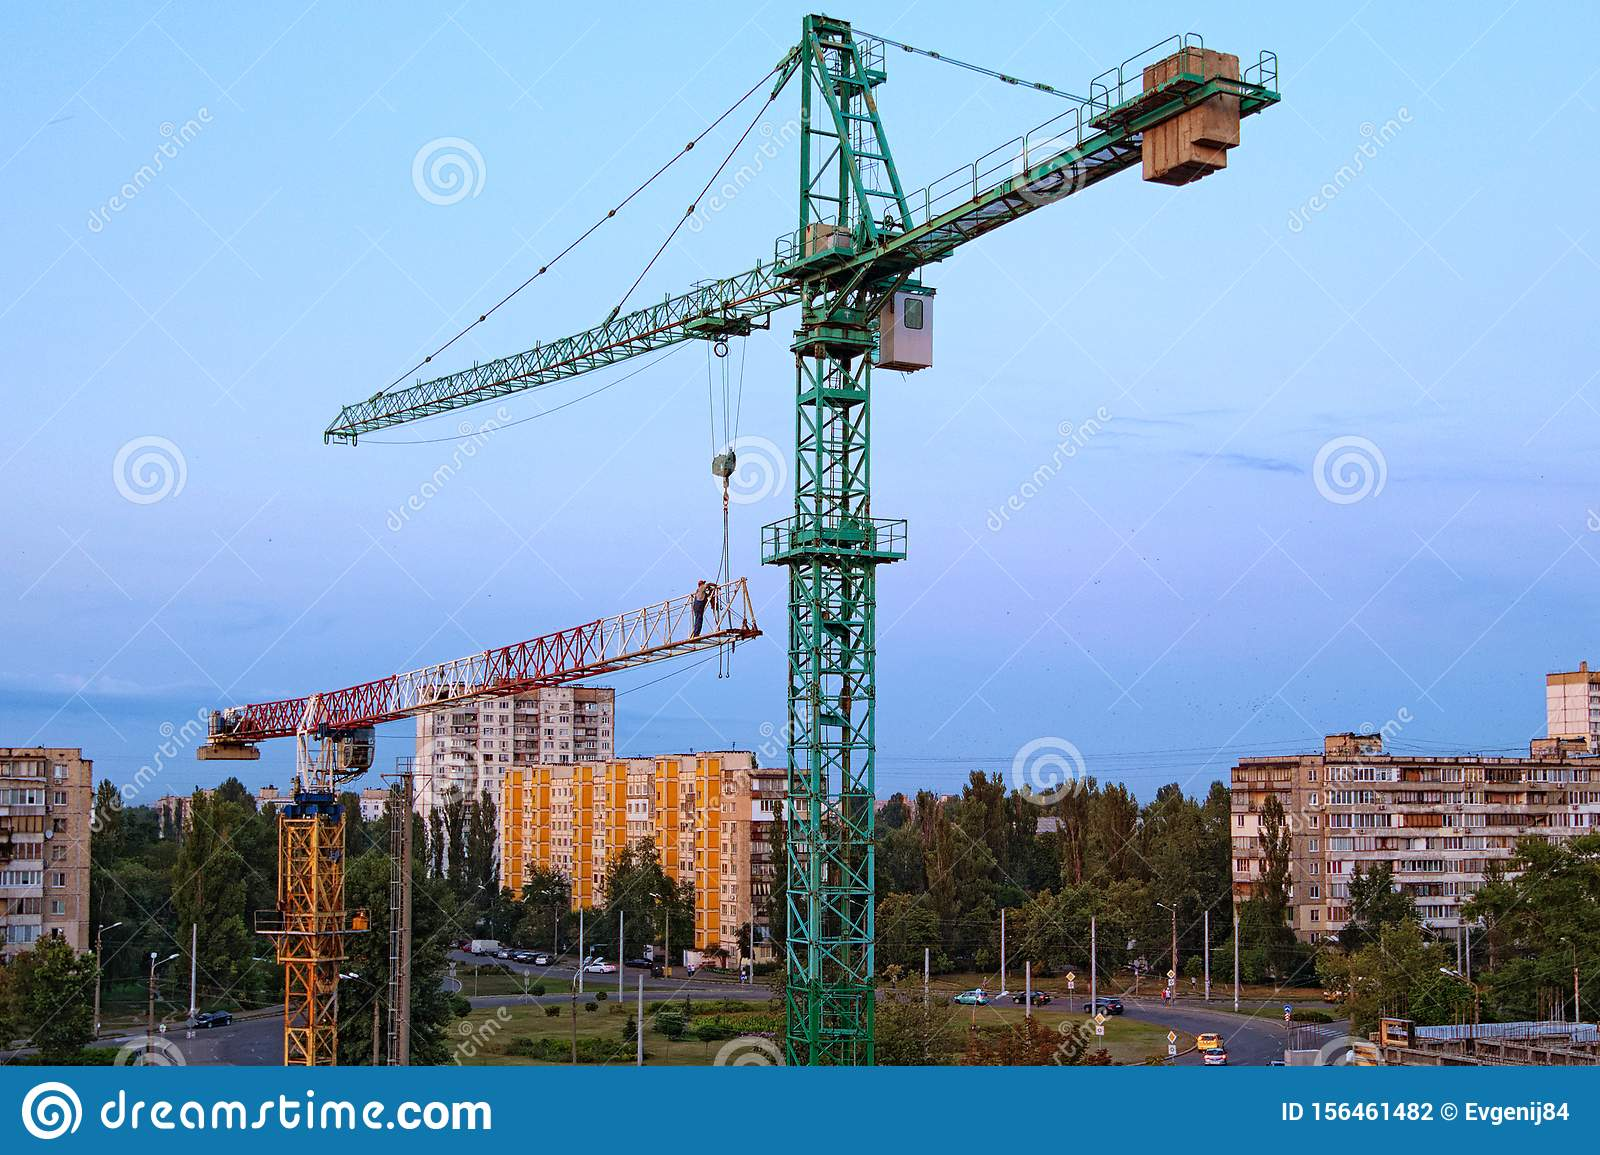 Safety Breach During The Process Of Mounting Tower Crane The Installer Disengages The Cable From The Tower Crane Stock Photo Image Of Breach Foreman 156461482